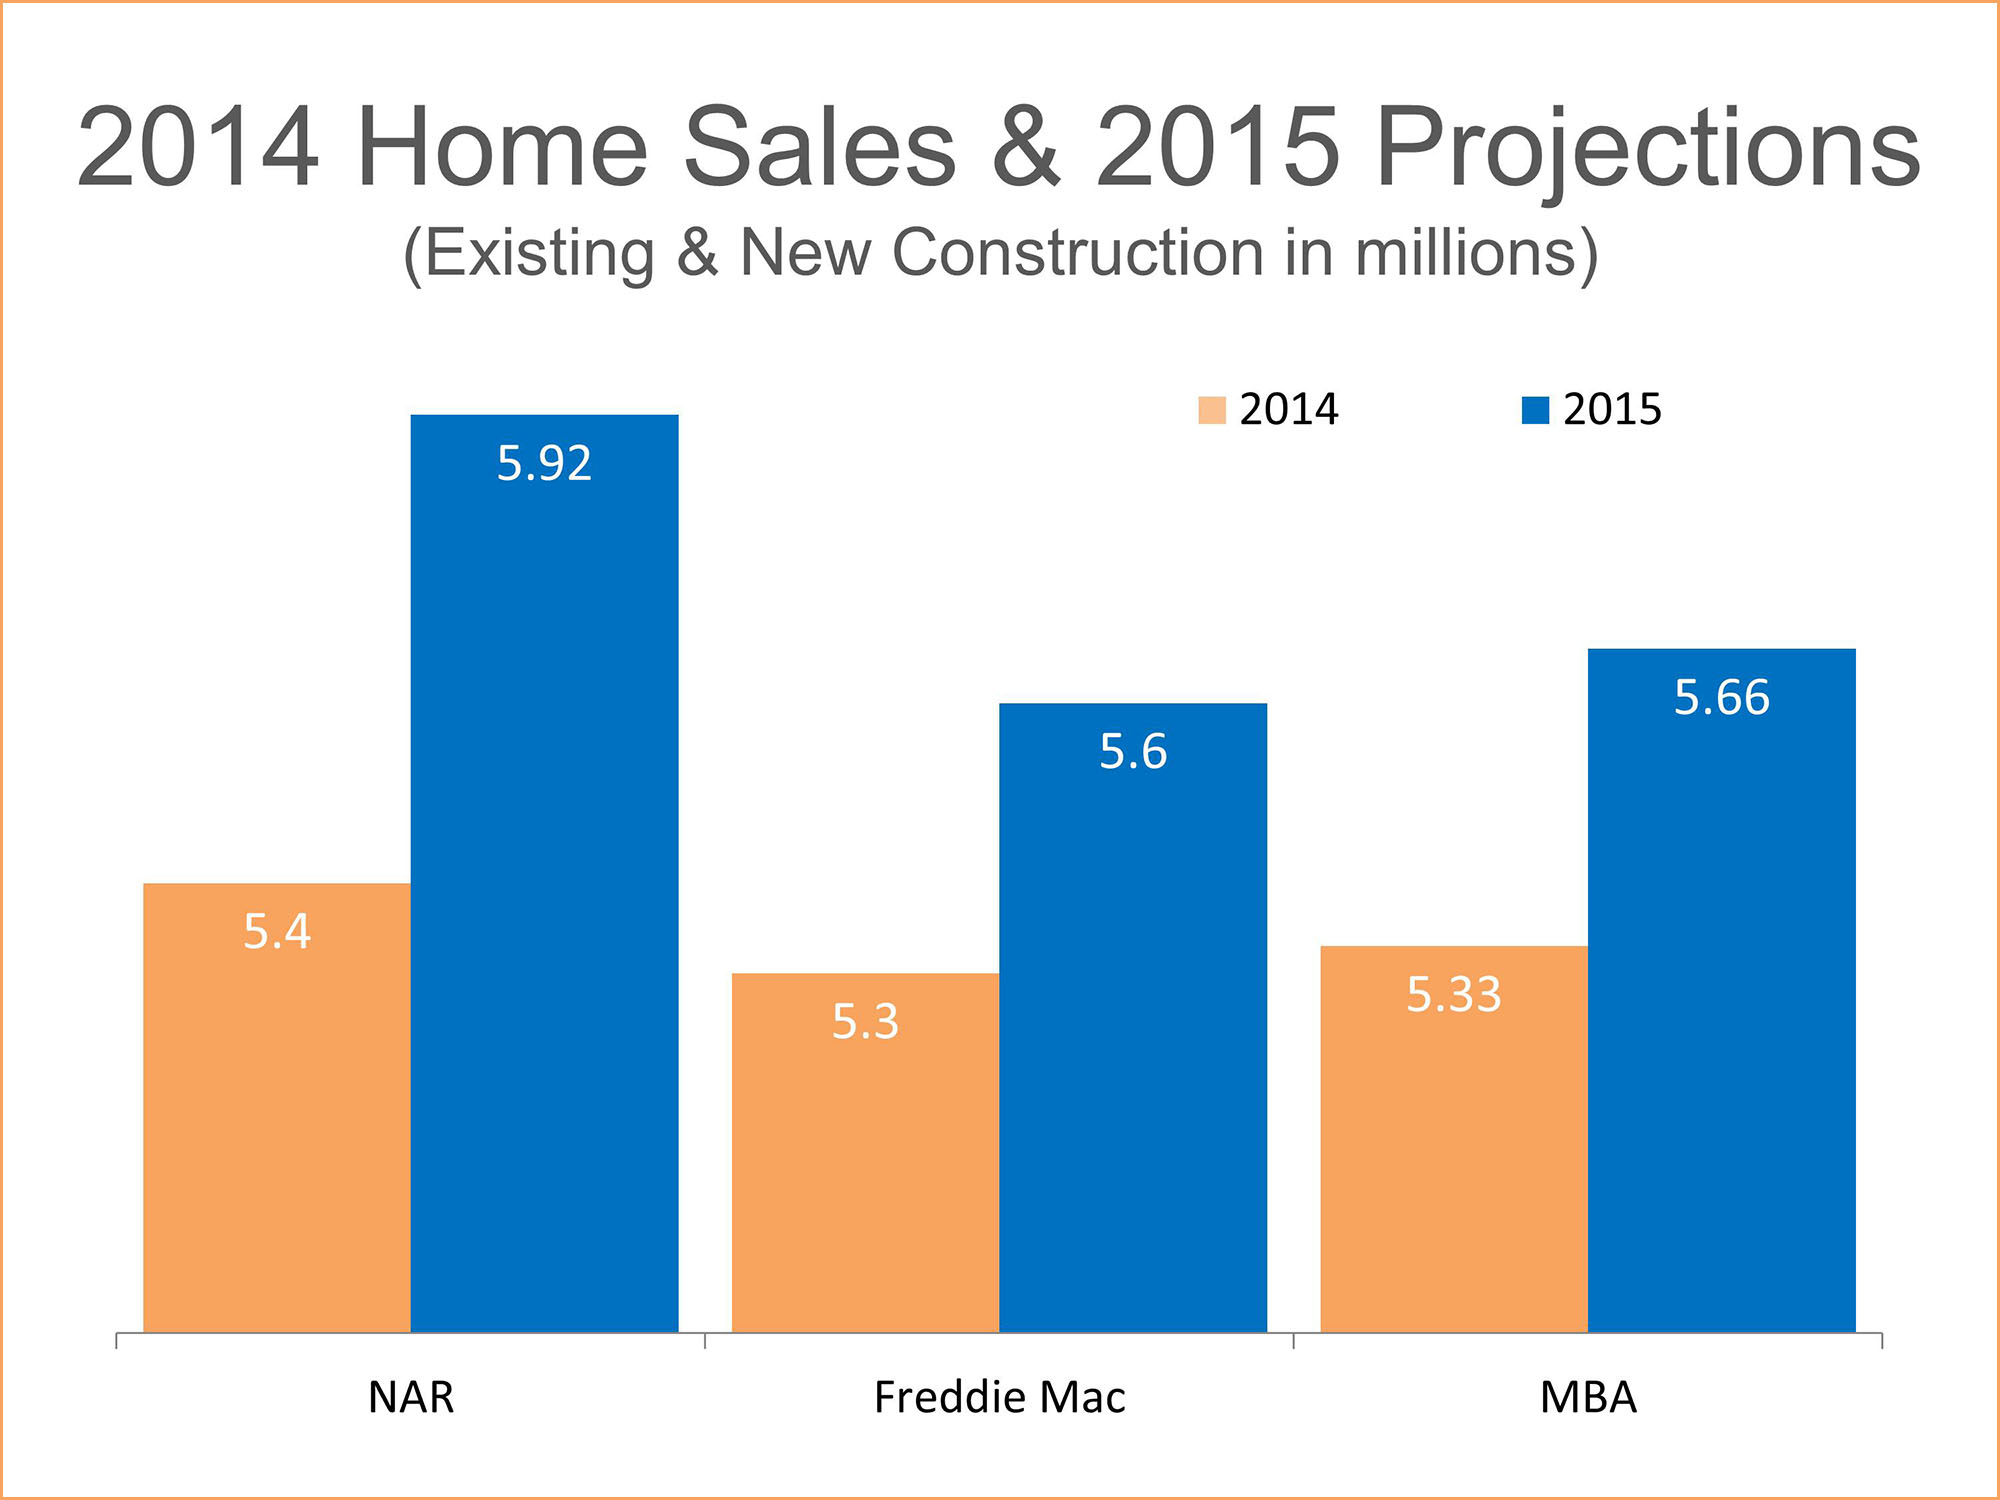 2014 Home Sales and 2015 Projections